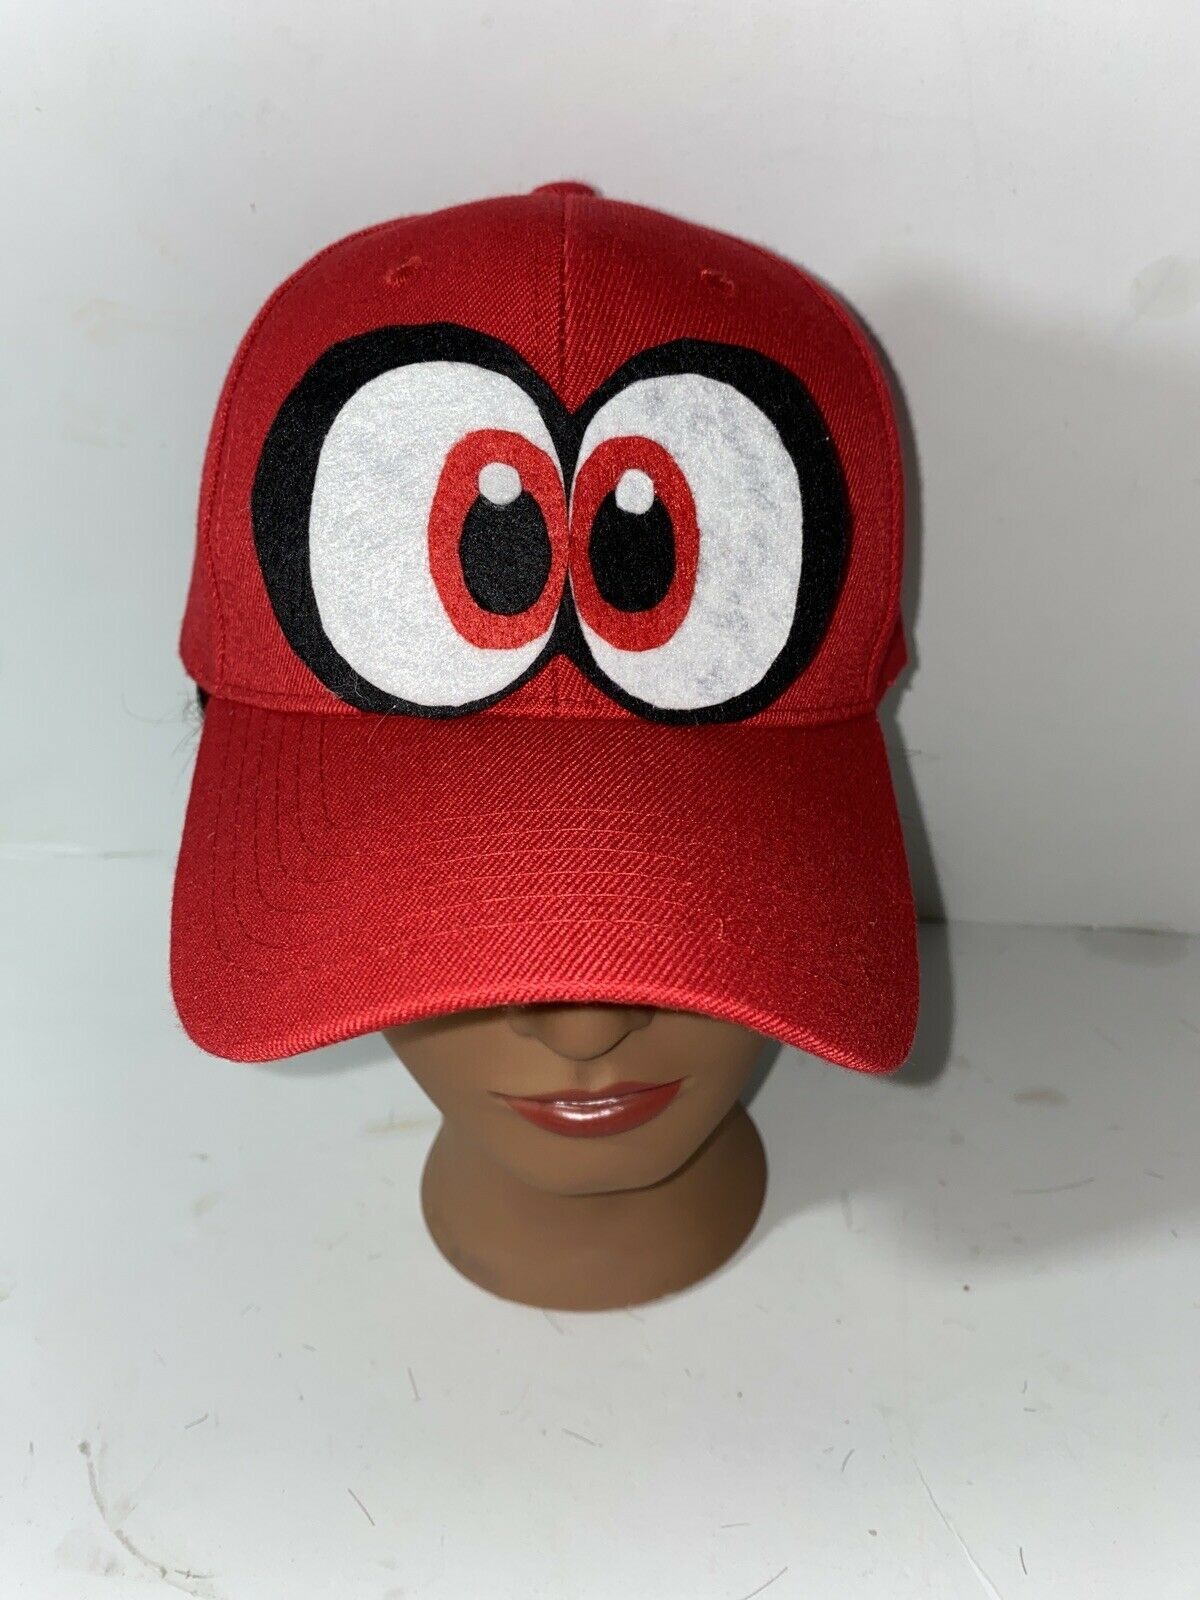 Super Mario Odyssey Cosplay Hat Cappy Cap With Eyes Officially Licensed Nintendo For Sale Online Ebay